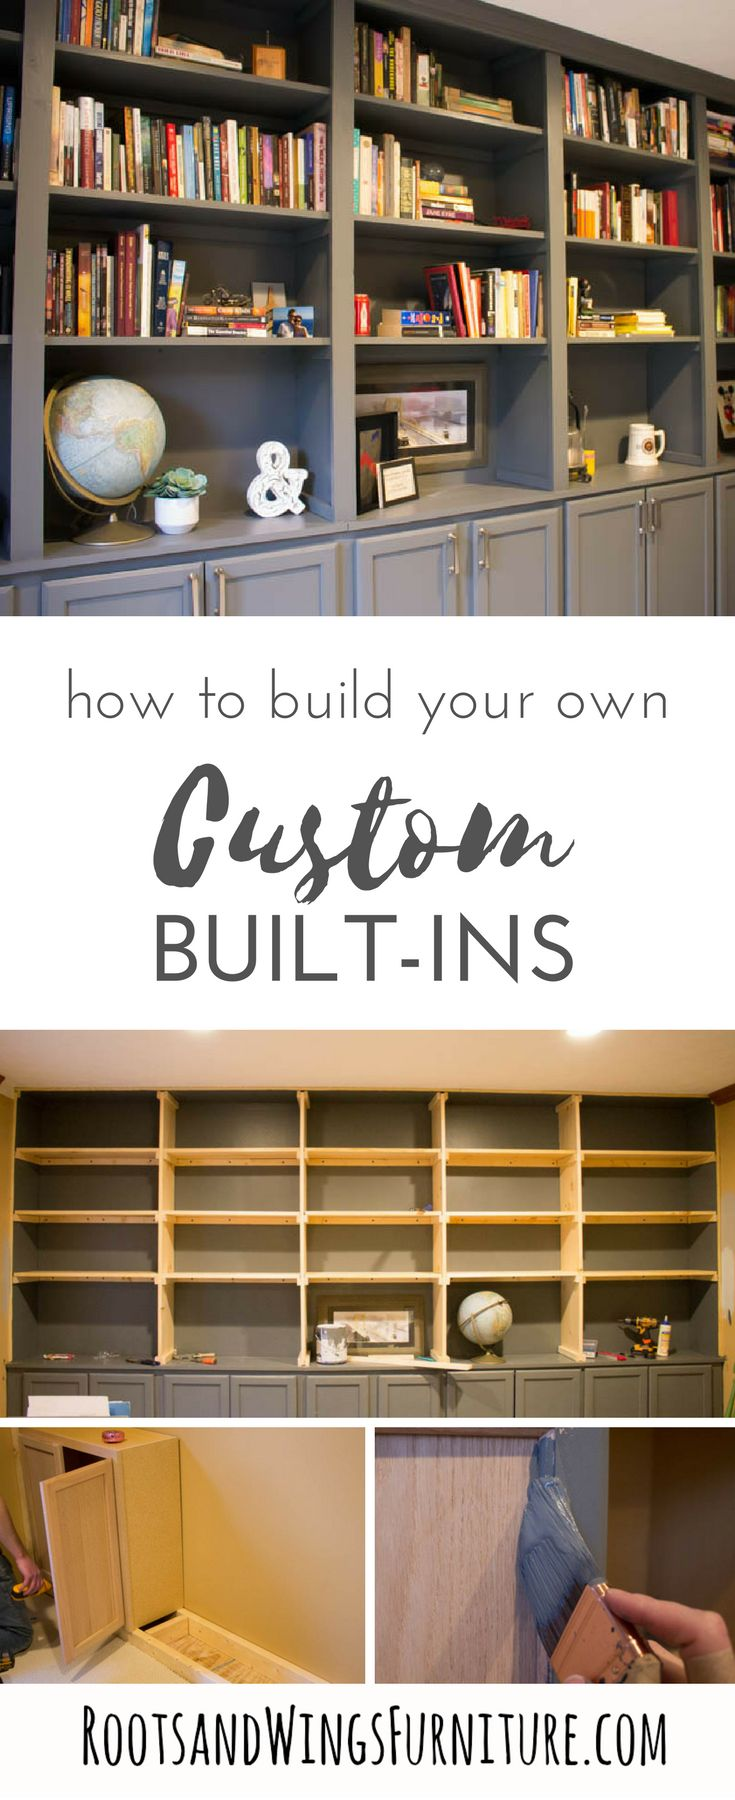 DIY wall to wall book cases. Use kitchen cabinets as a base and build a whole wall of built-ins for your home office. Add tons of storage and character. Tutorial by Jenni of Roots and Wings Furniture. #customcabinets